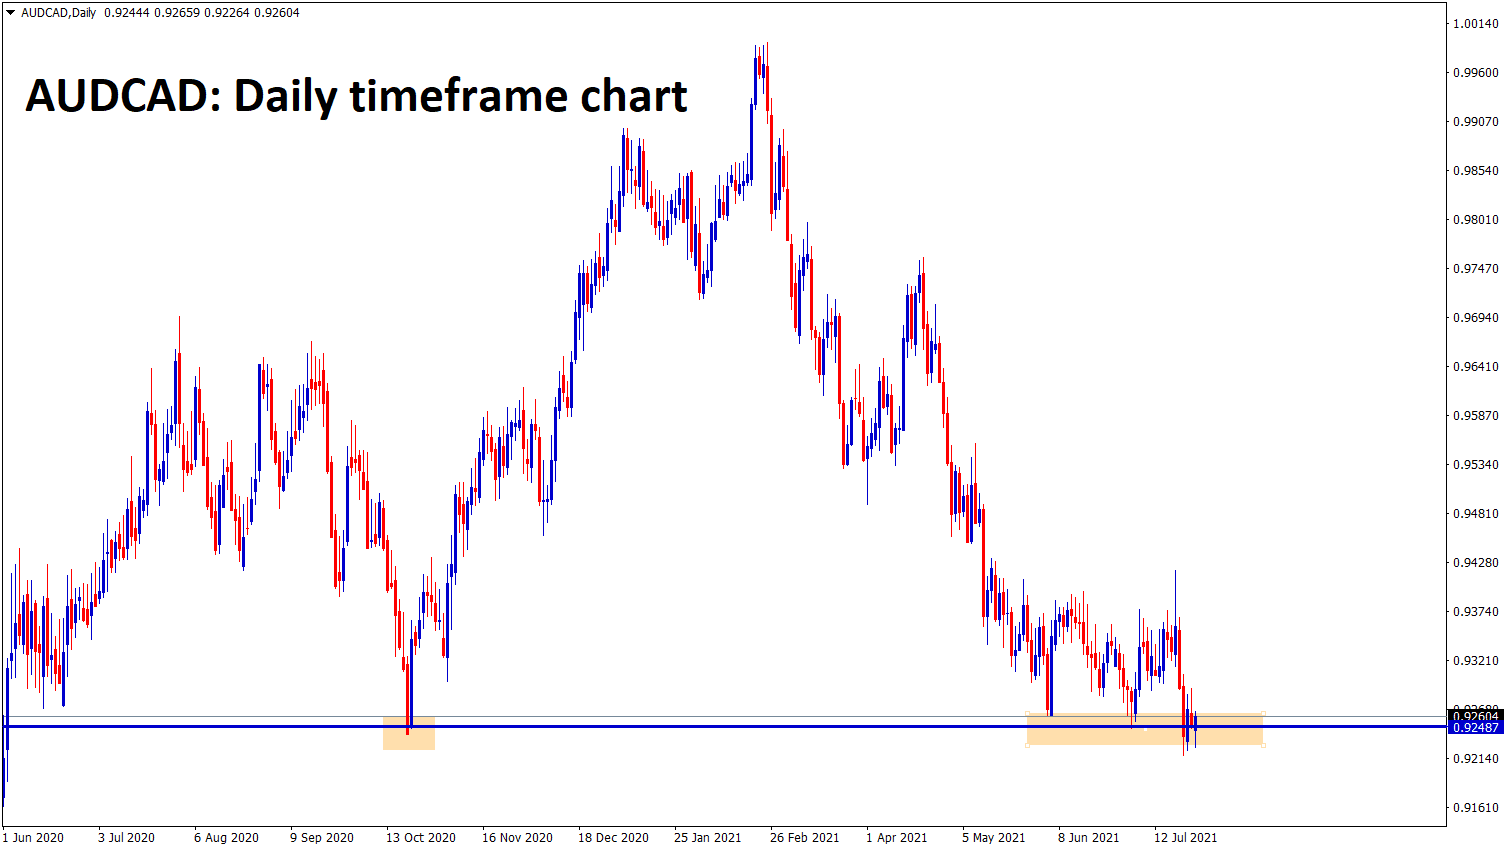 AUDCAD is ranging now at the support area